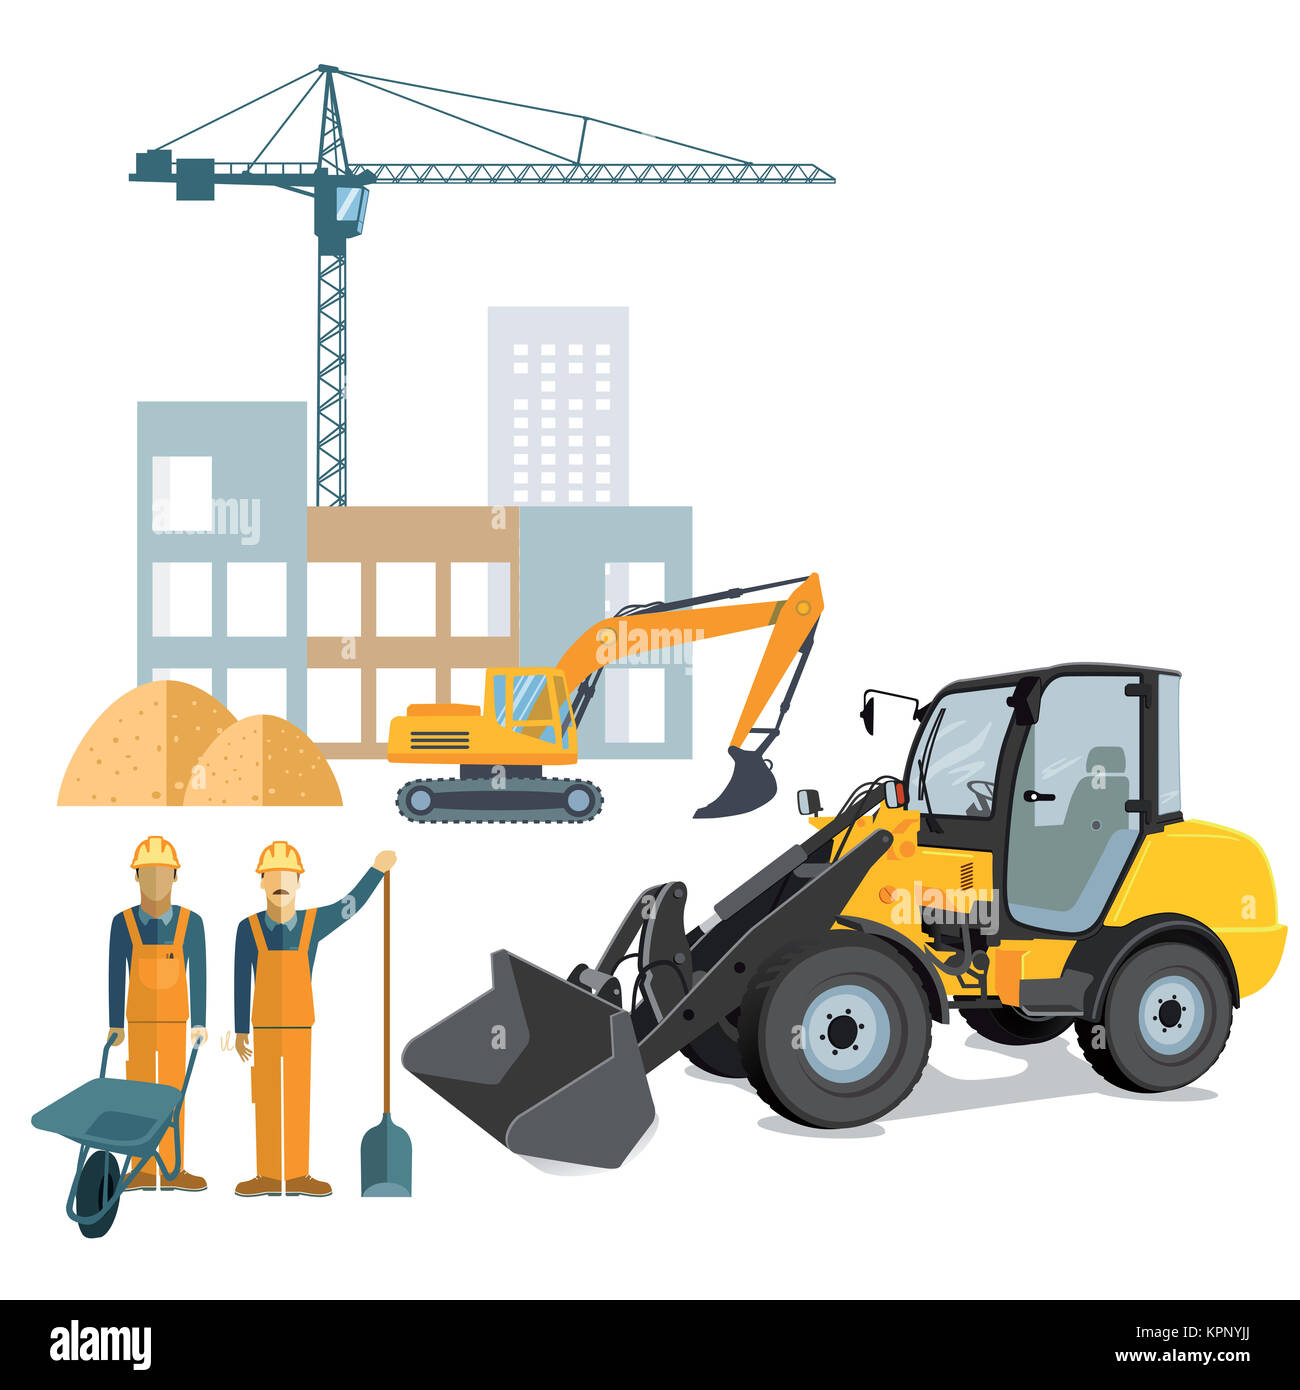 construction site with wheel loader and crane - Stock Image